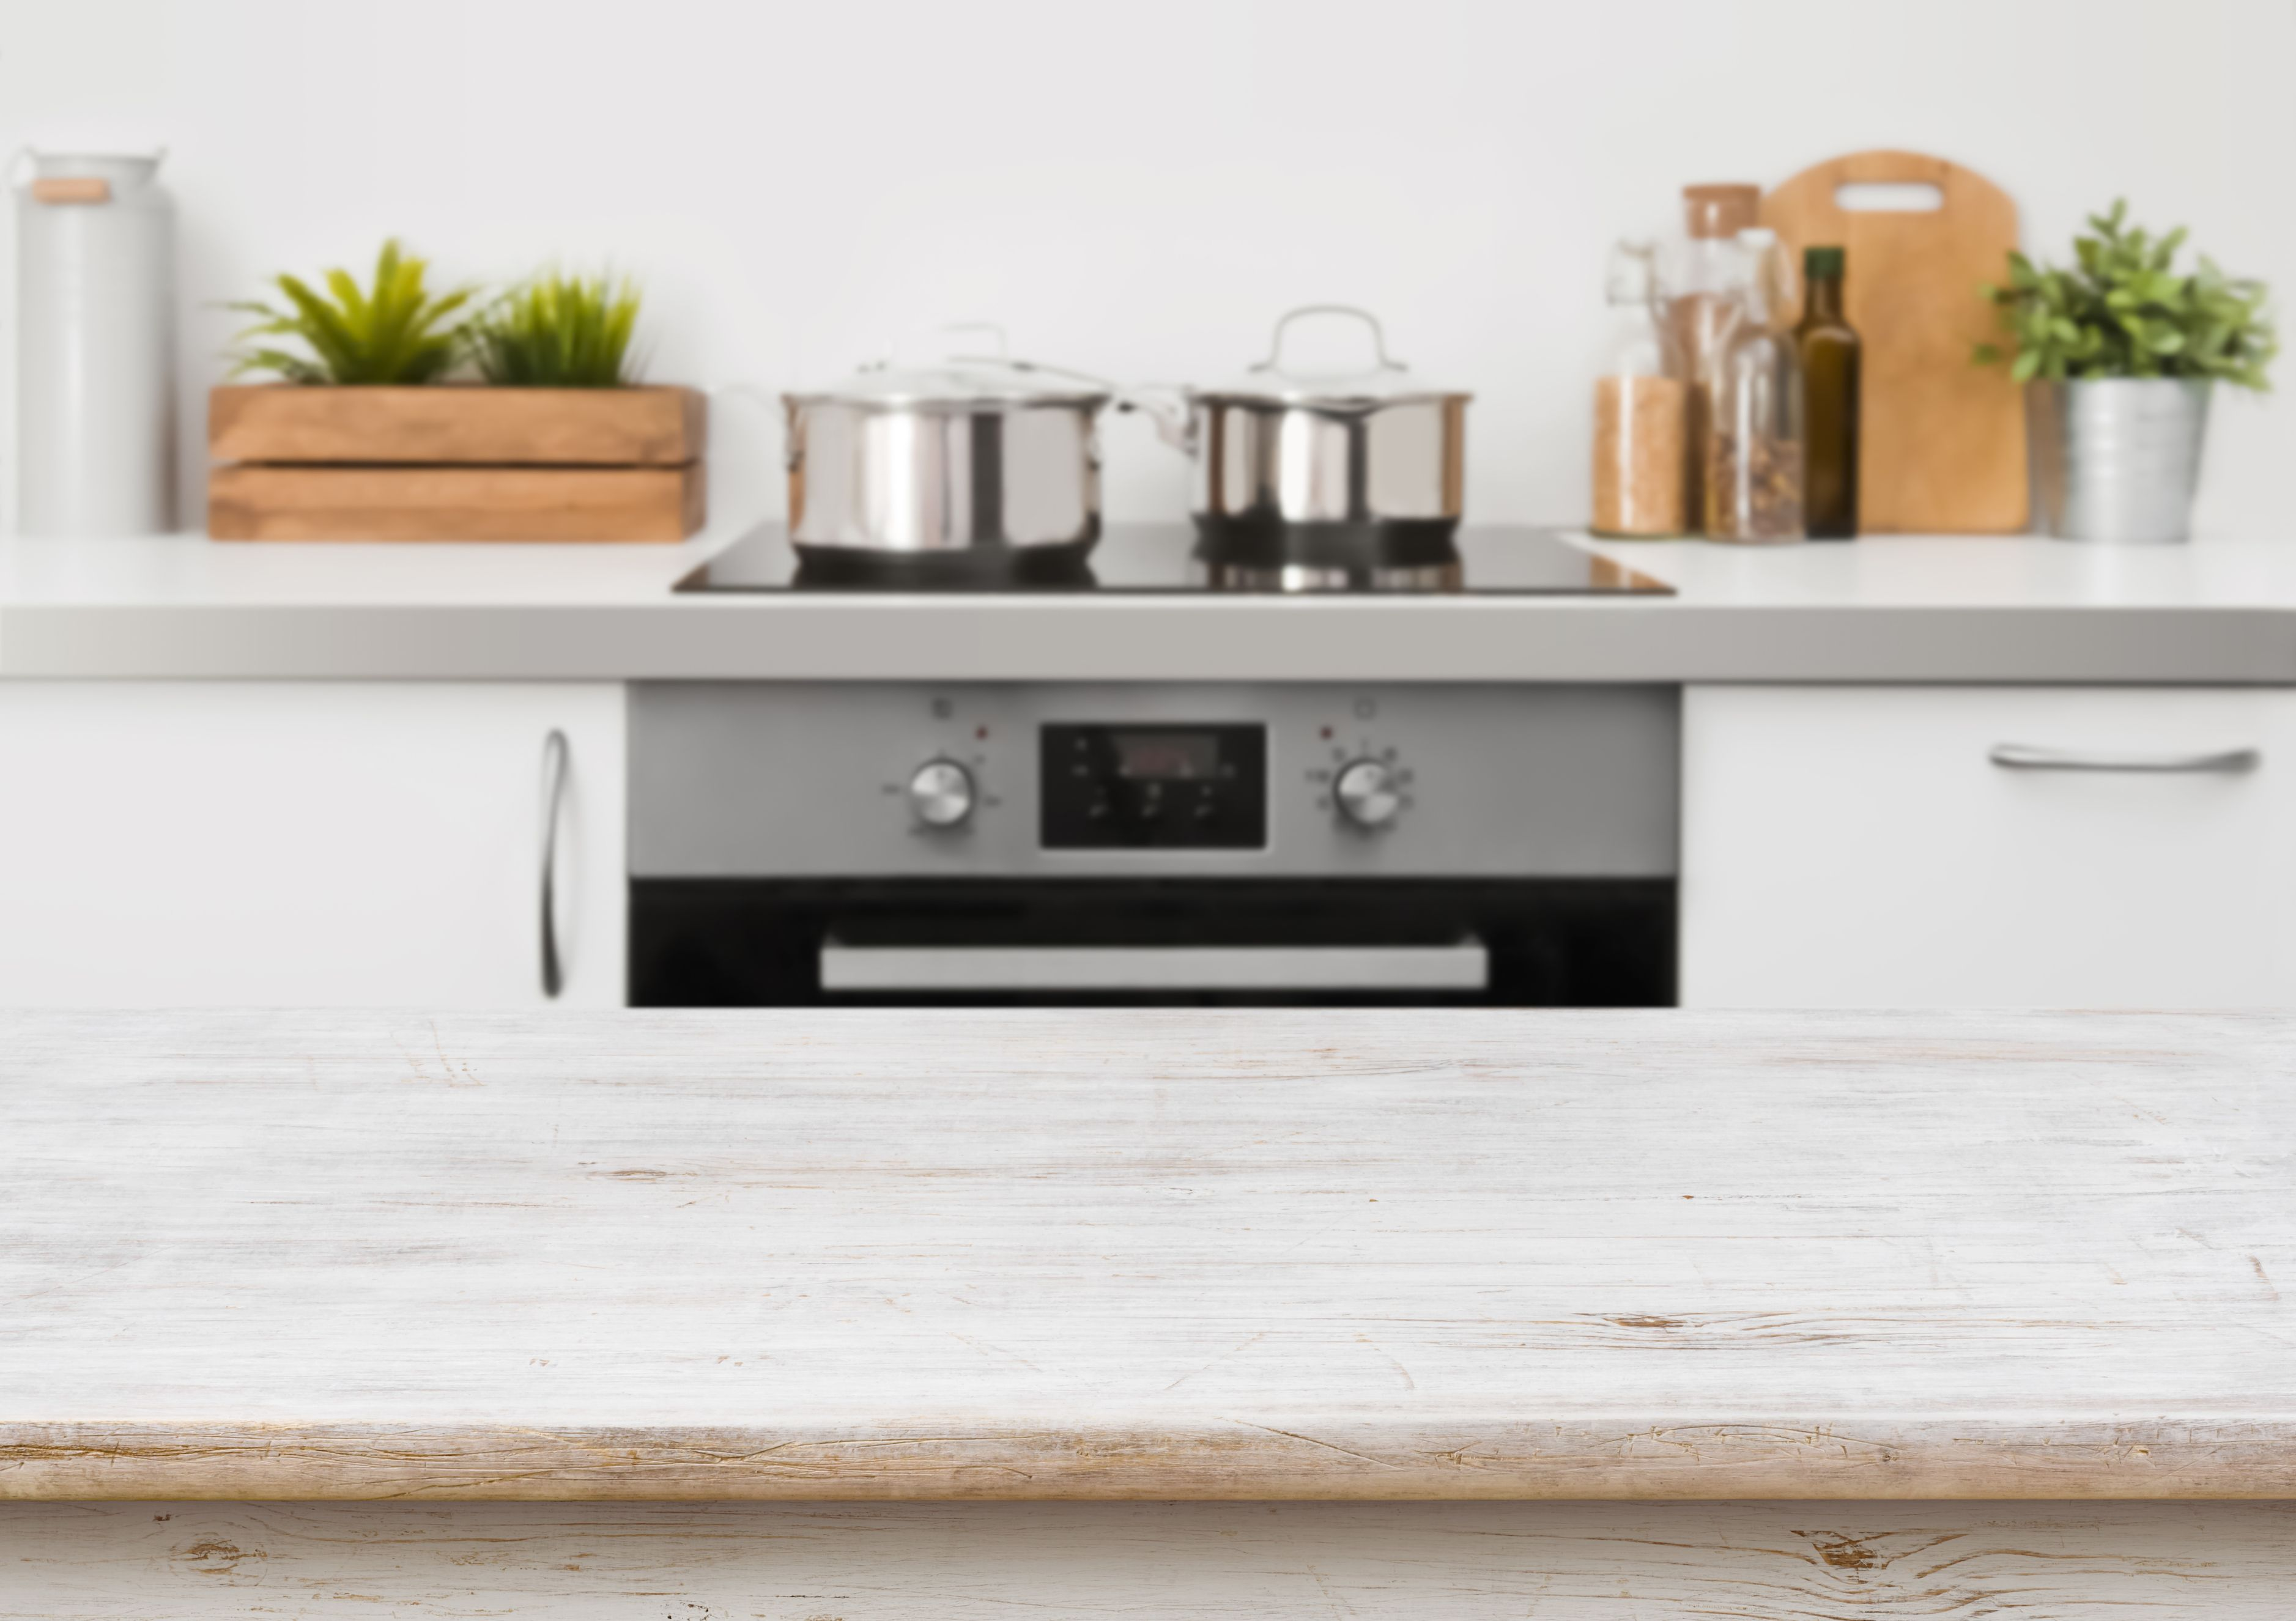 Oven and cooker buying guide - best oven - best cooker